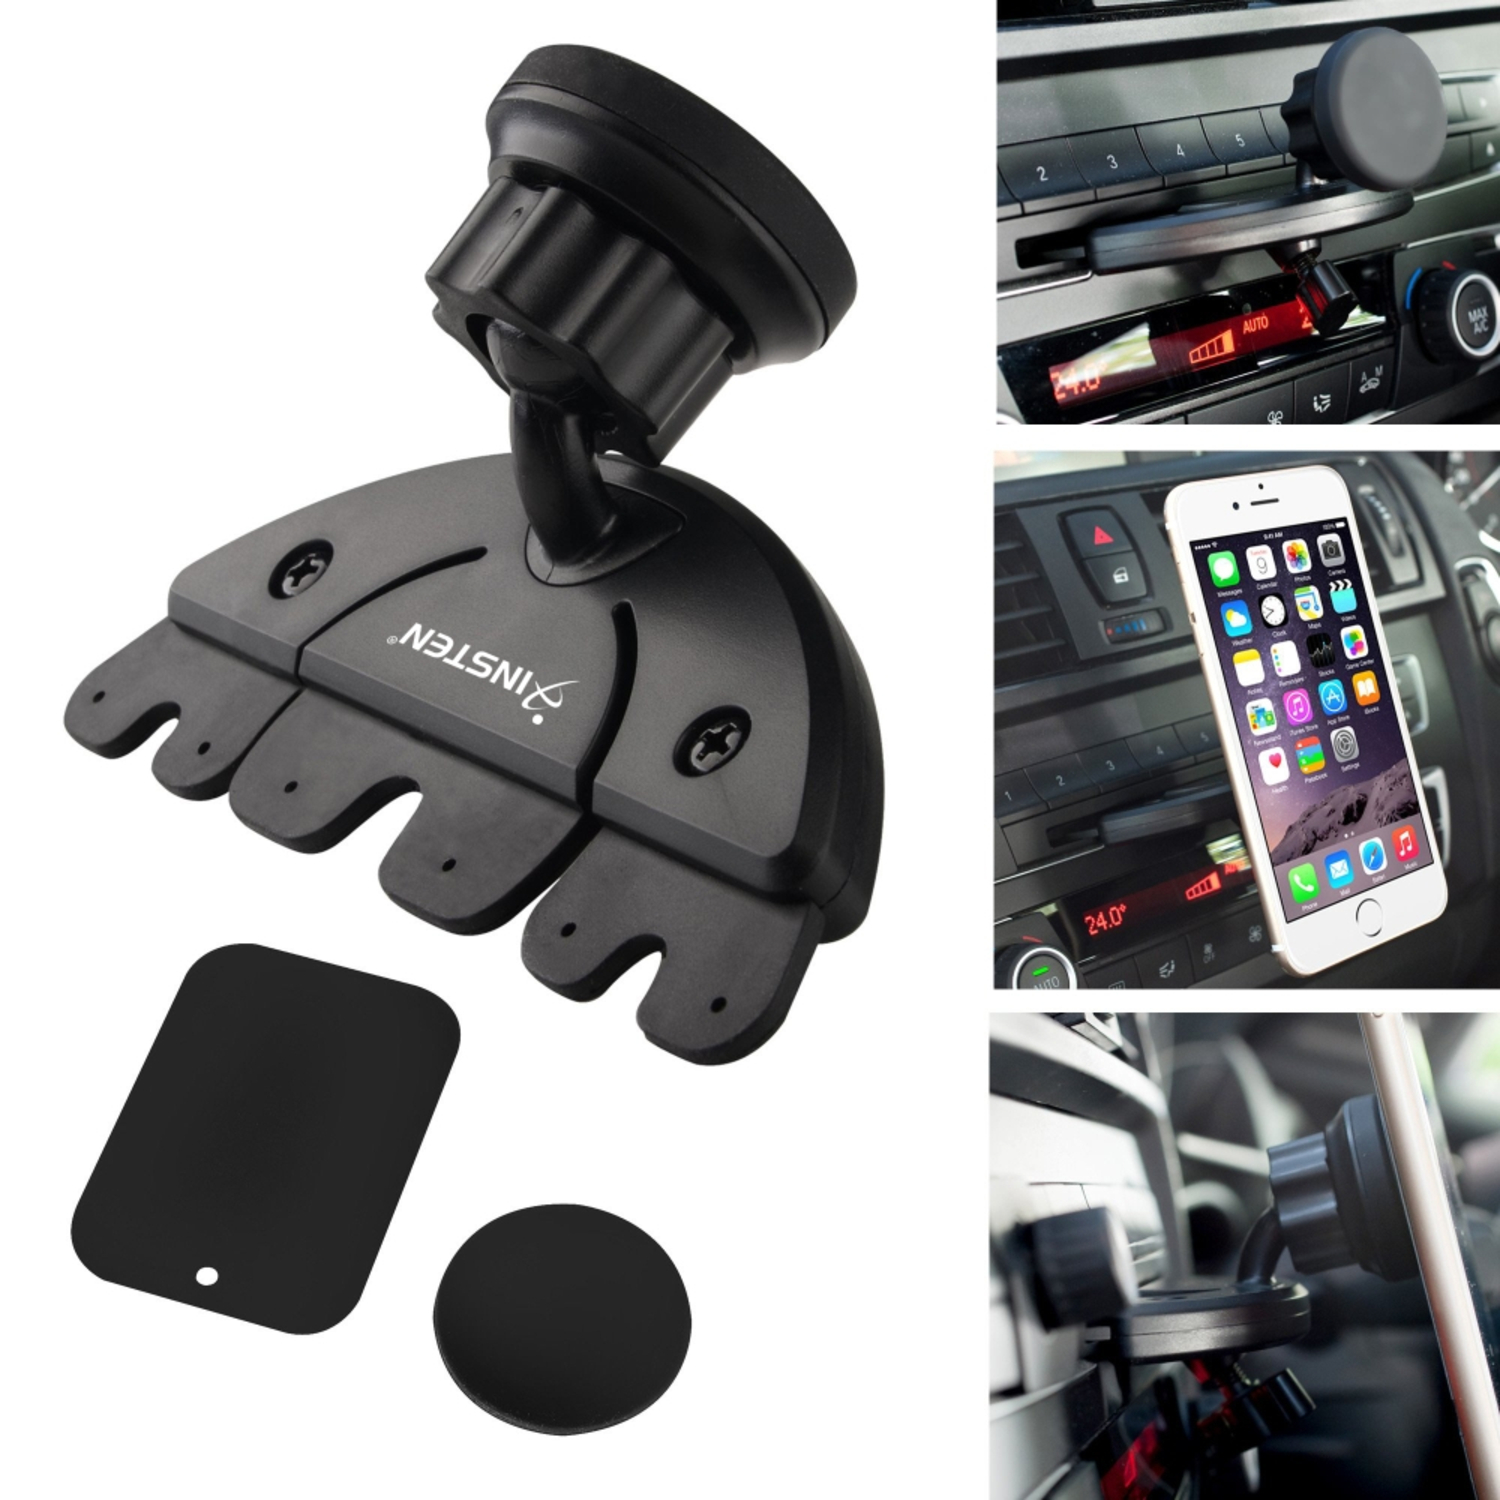 Insten car cd slot magnetic phone holder mount for apple iphone 7 6 6s plus 5s se android smartphone lg htc samsung galaxy s7 s6 edge s5 note 5 4 core